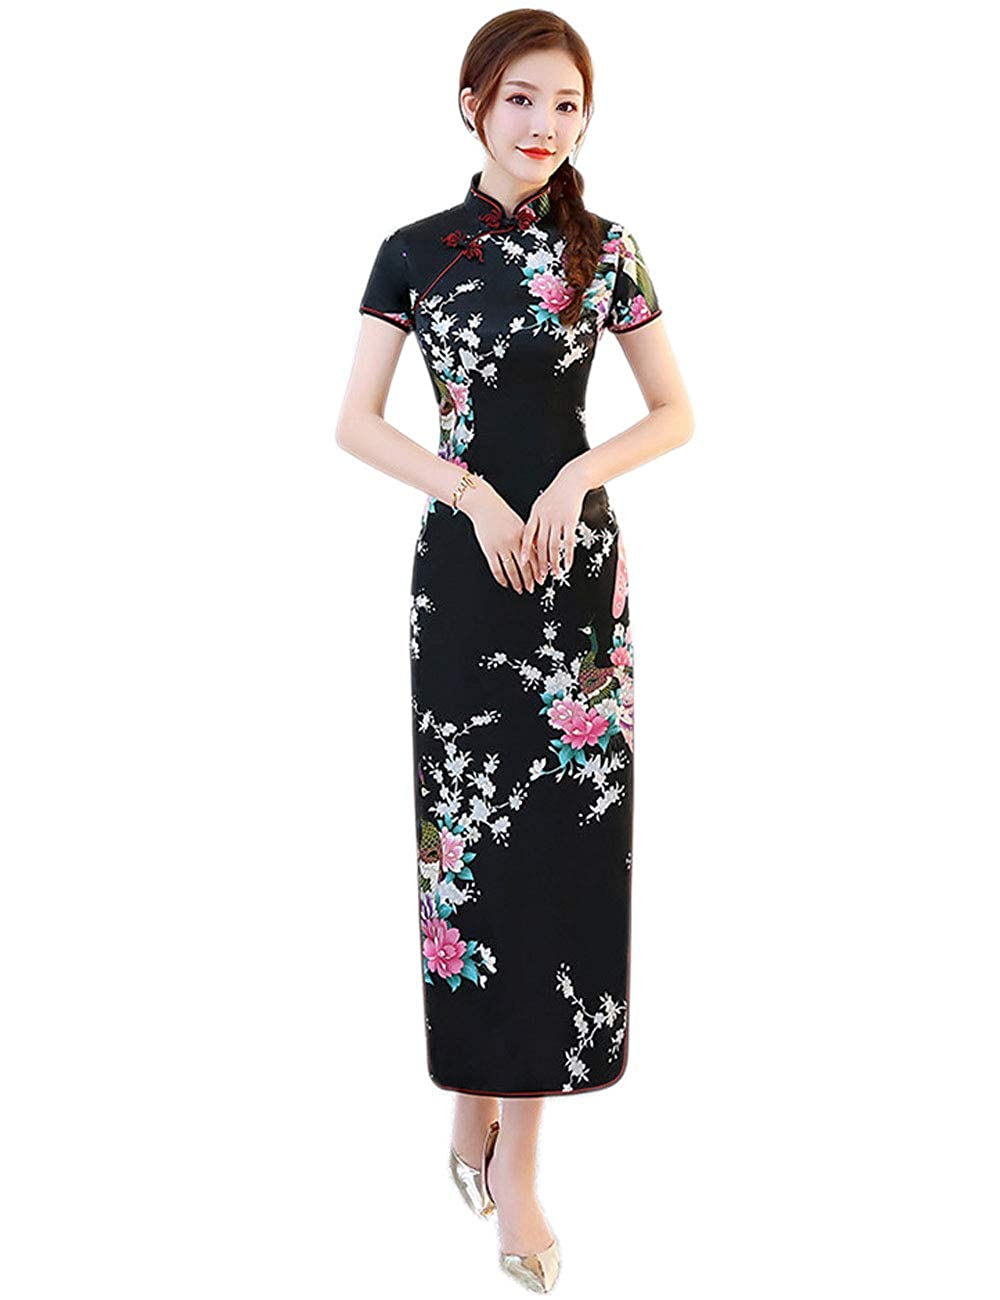 87a47445a Beloved One Women Satin Plus Size Peacock Cheongsam Chinese Dress for  Wedding or Cocktail Party at Amazon Women's Clothing store: